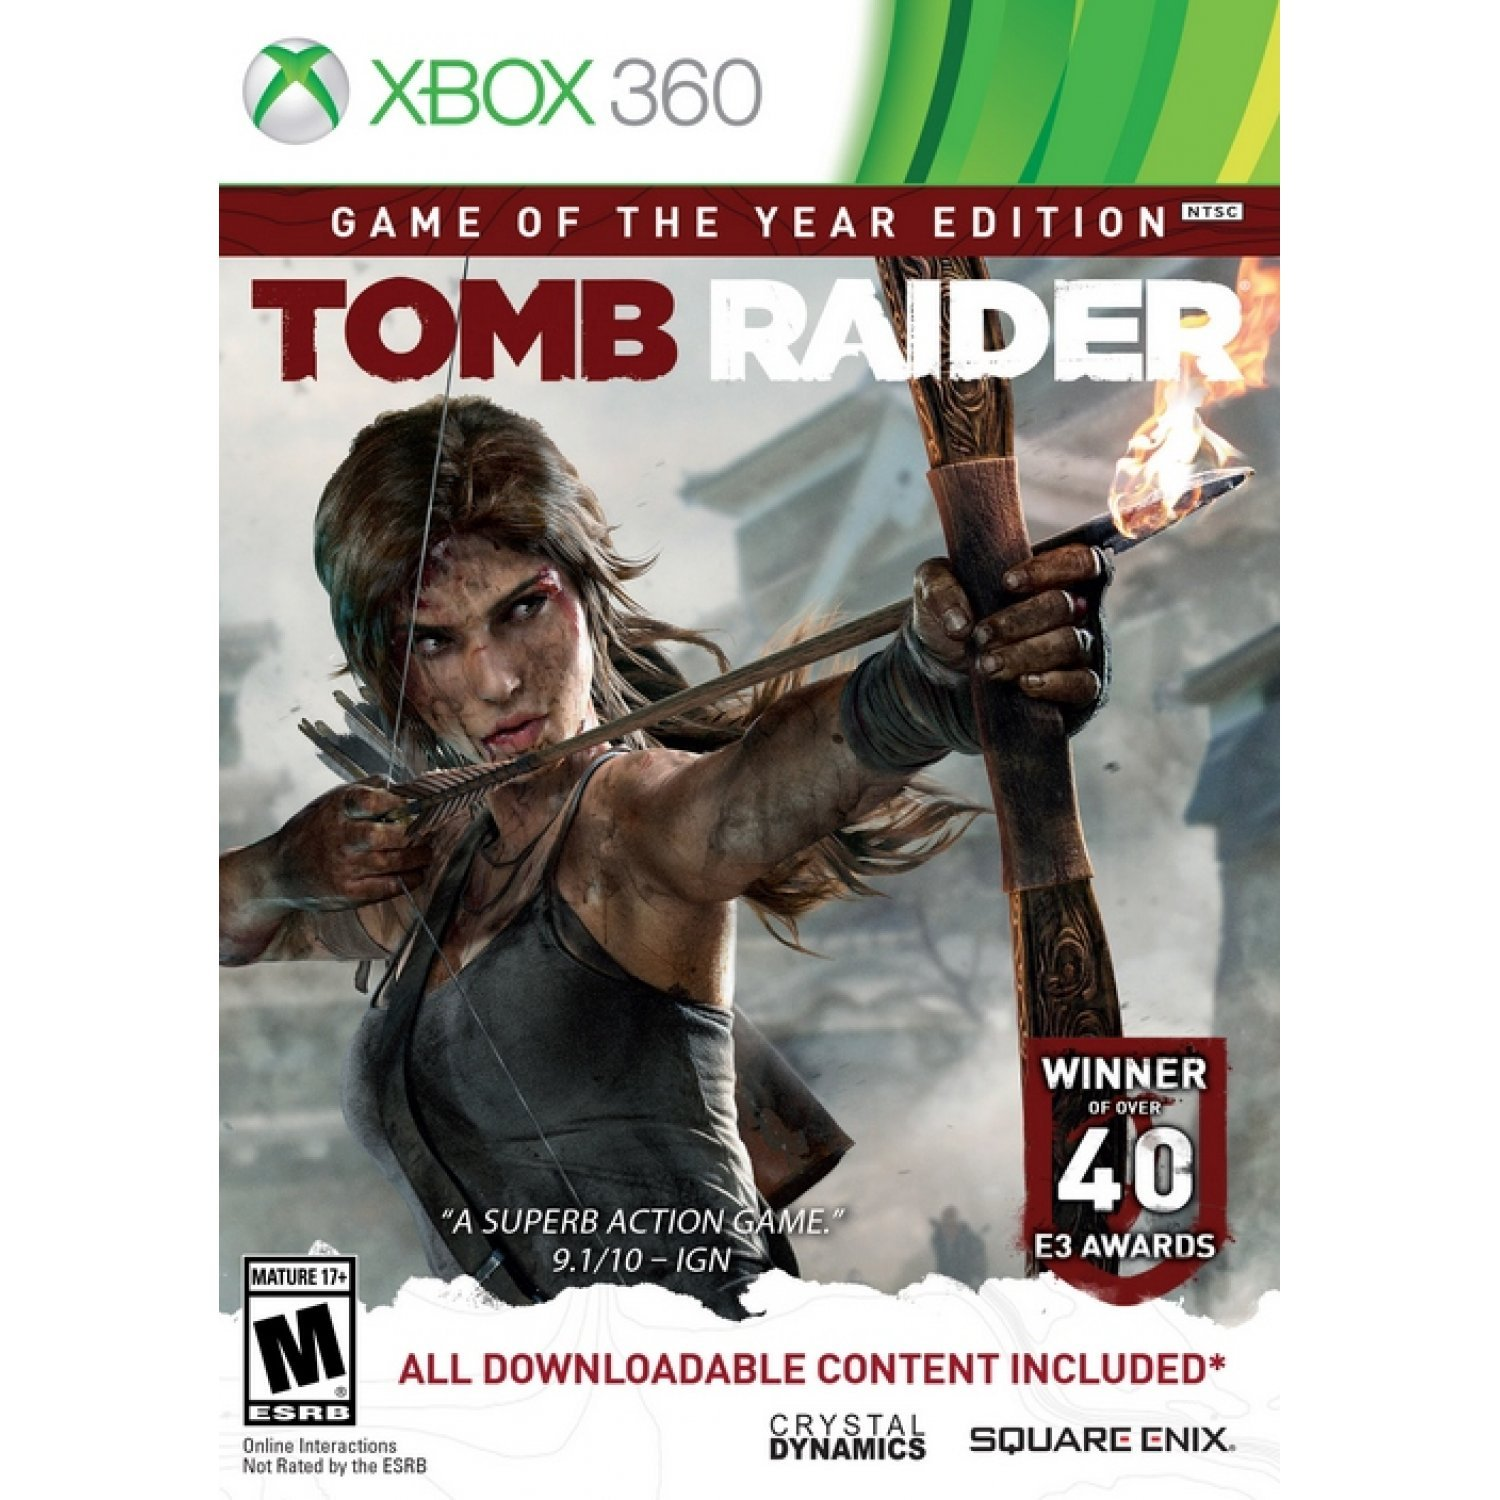 Tomb raider: multiplayer caves and cliffs map pack out now for.